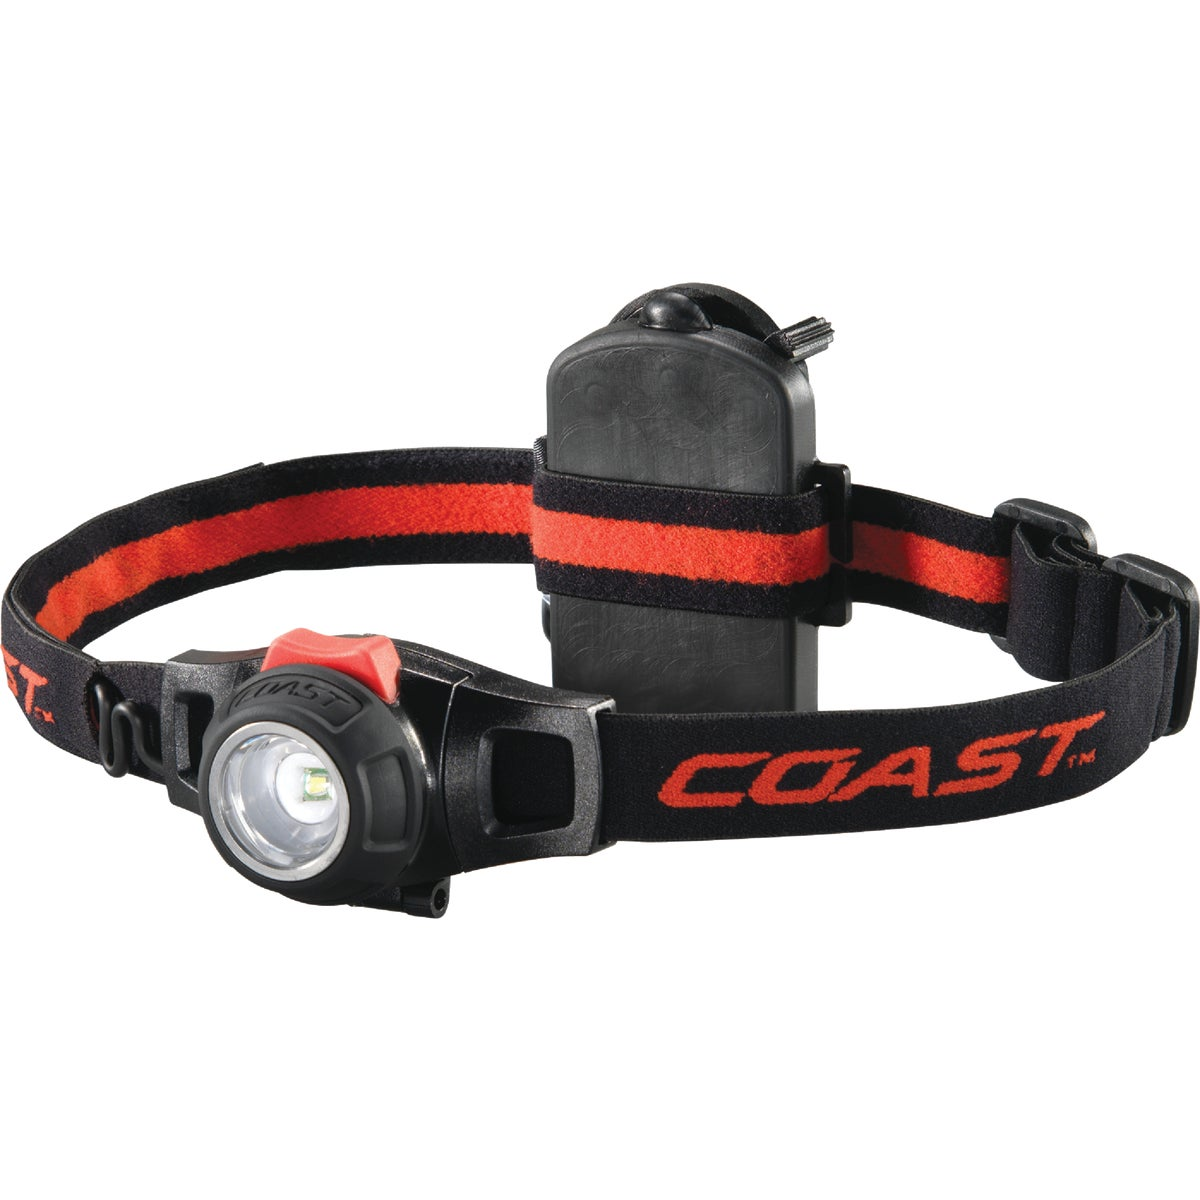 Hl7 Led Headlamp